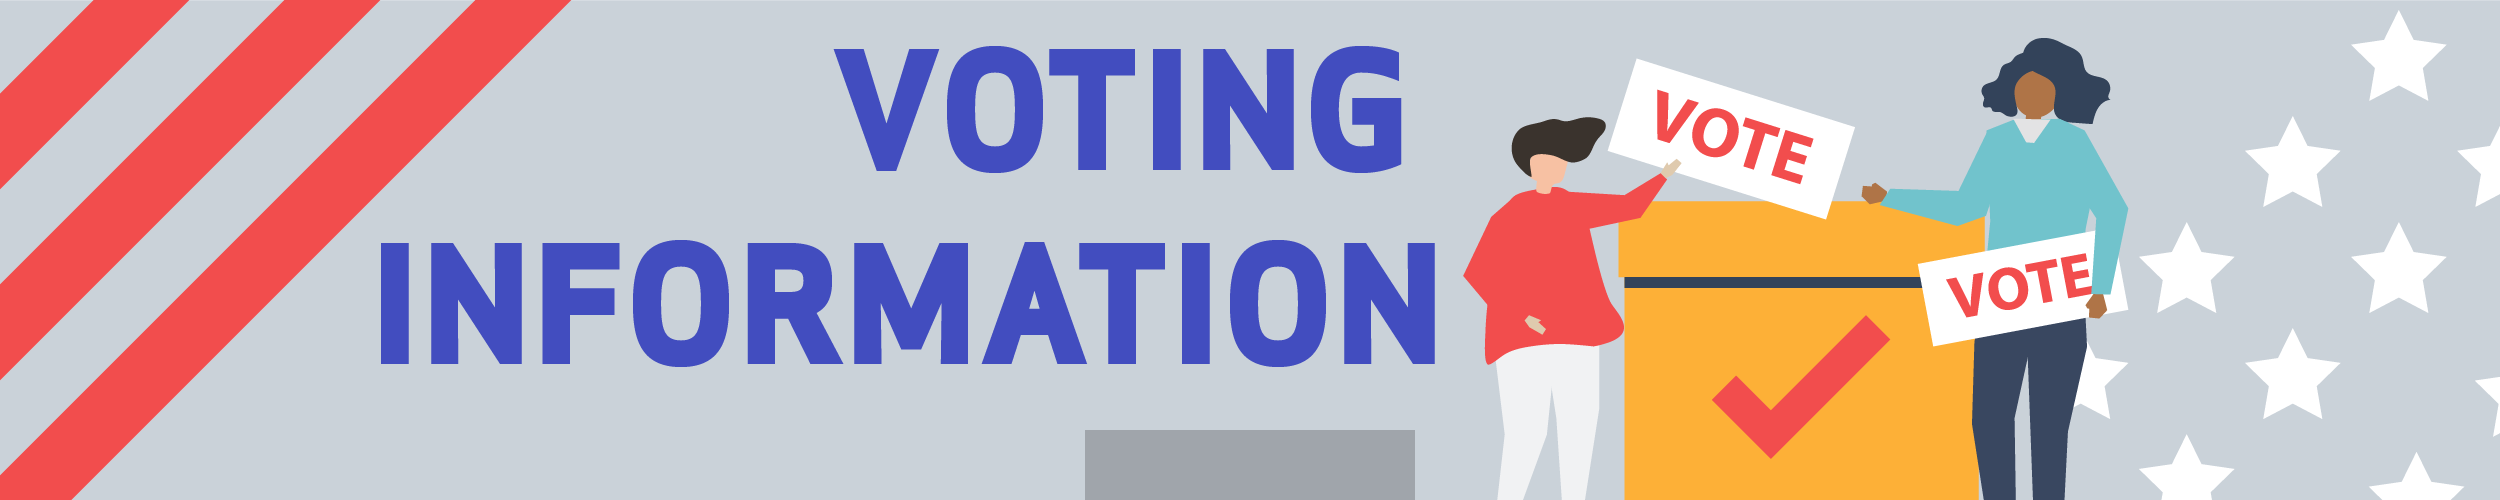 """Voting Information Slide with people holding """"vote"""" signs in front of a voting booth"""